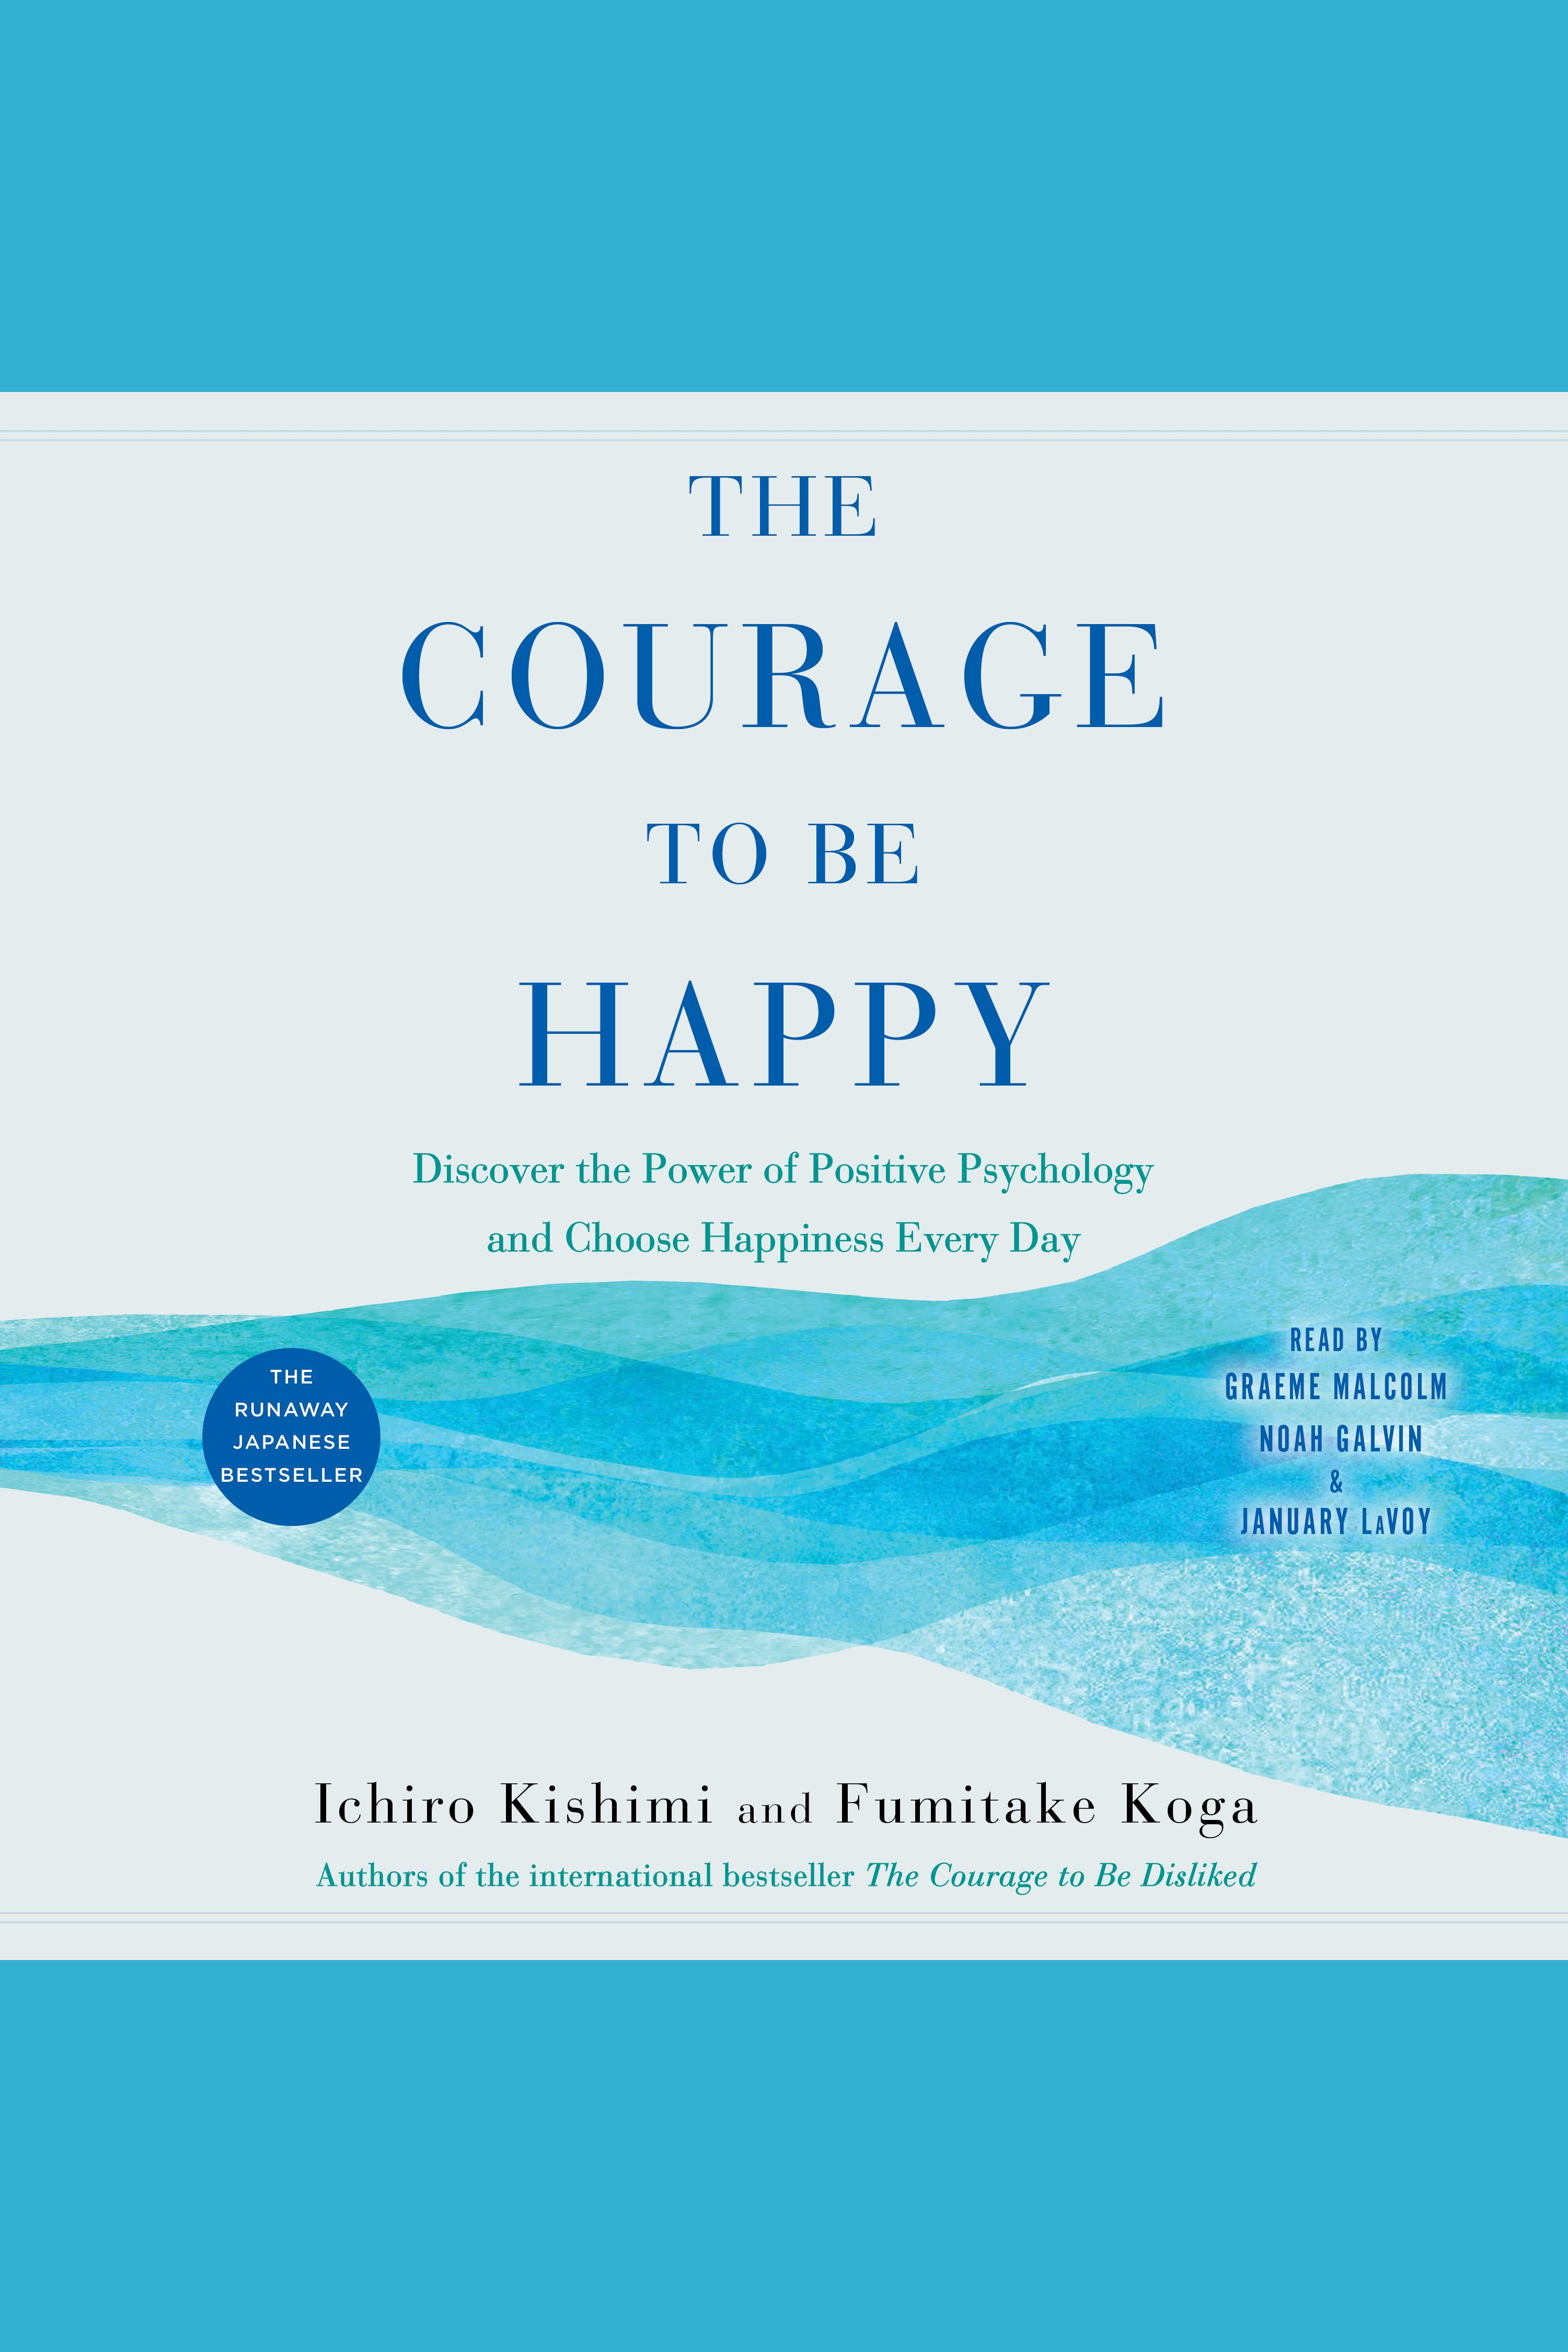 The Courage to Be Happy Discover the Power of Positive Psychology and Choose Happiness Every Day